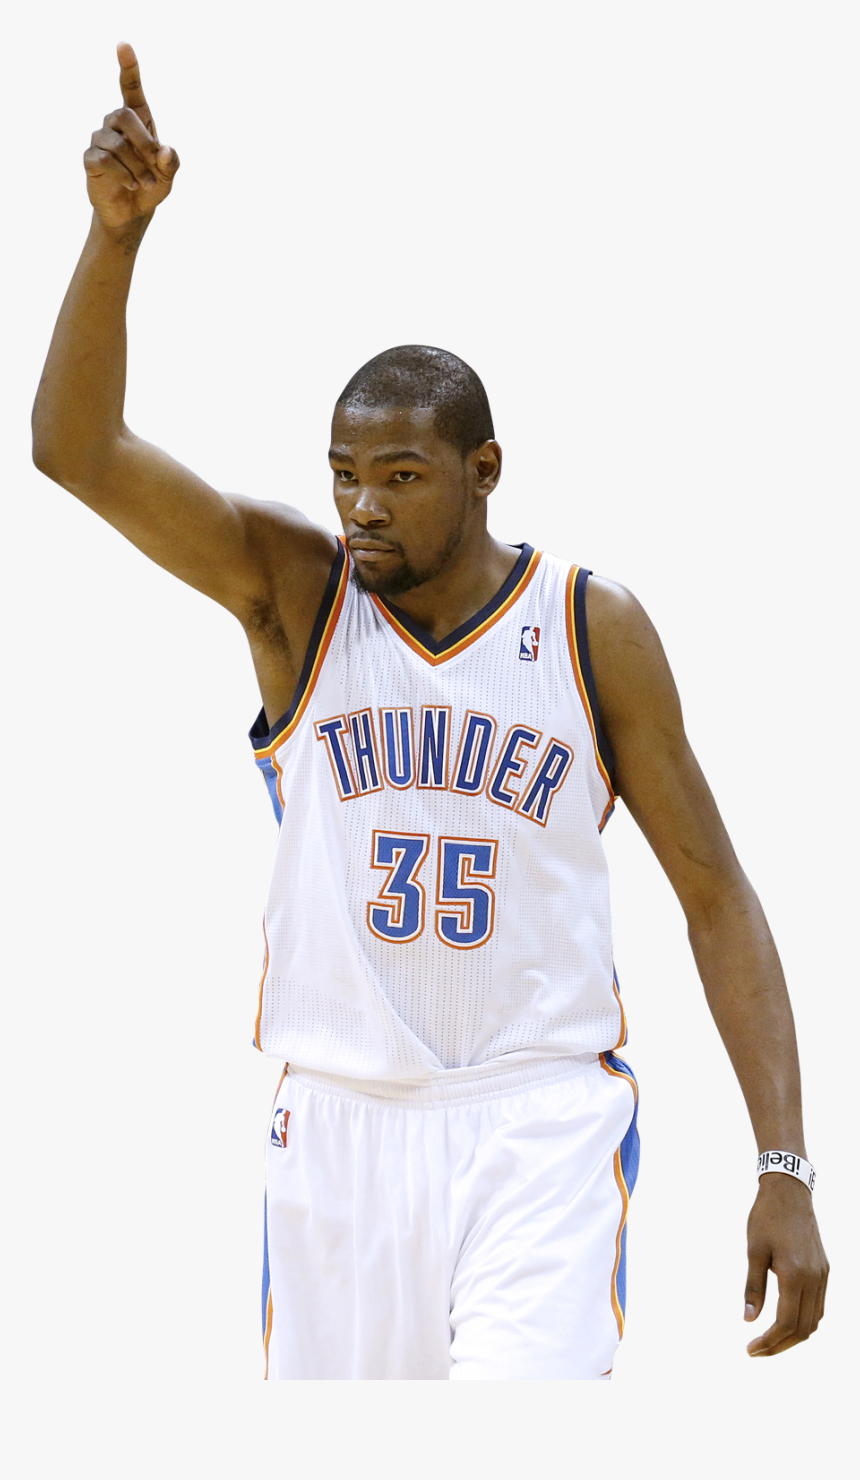 Kevin Durant Says He Will Sign With The Golden State - Kevin Durant Transparent, HD Png Download, Free Download